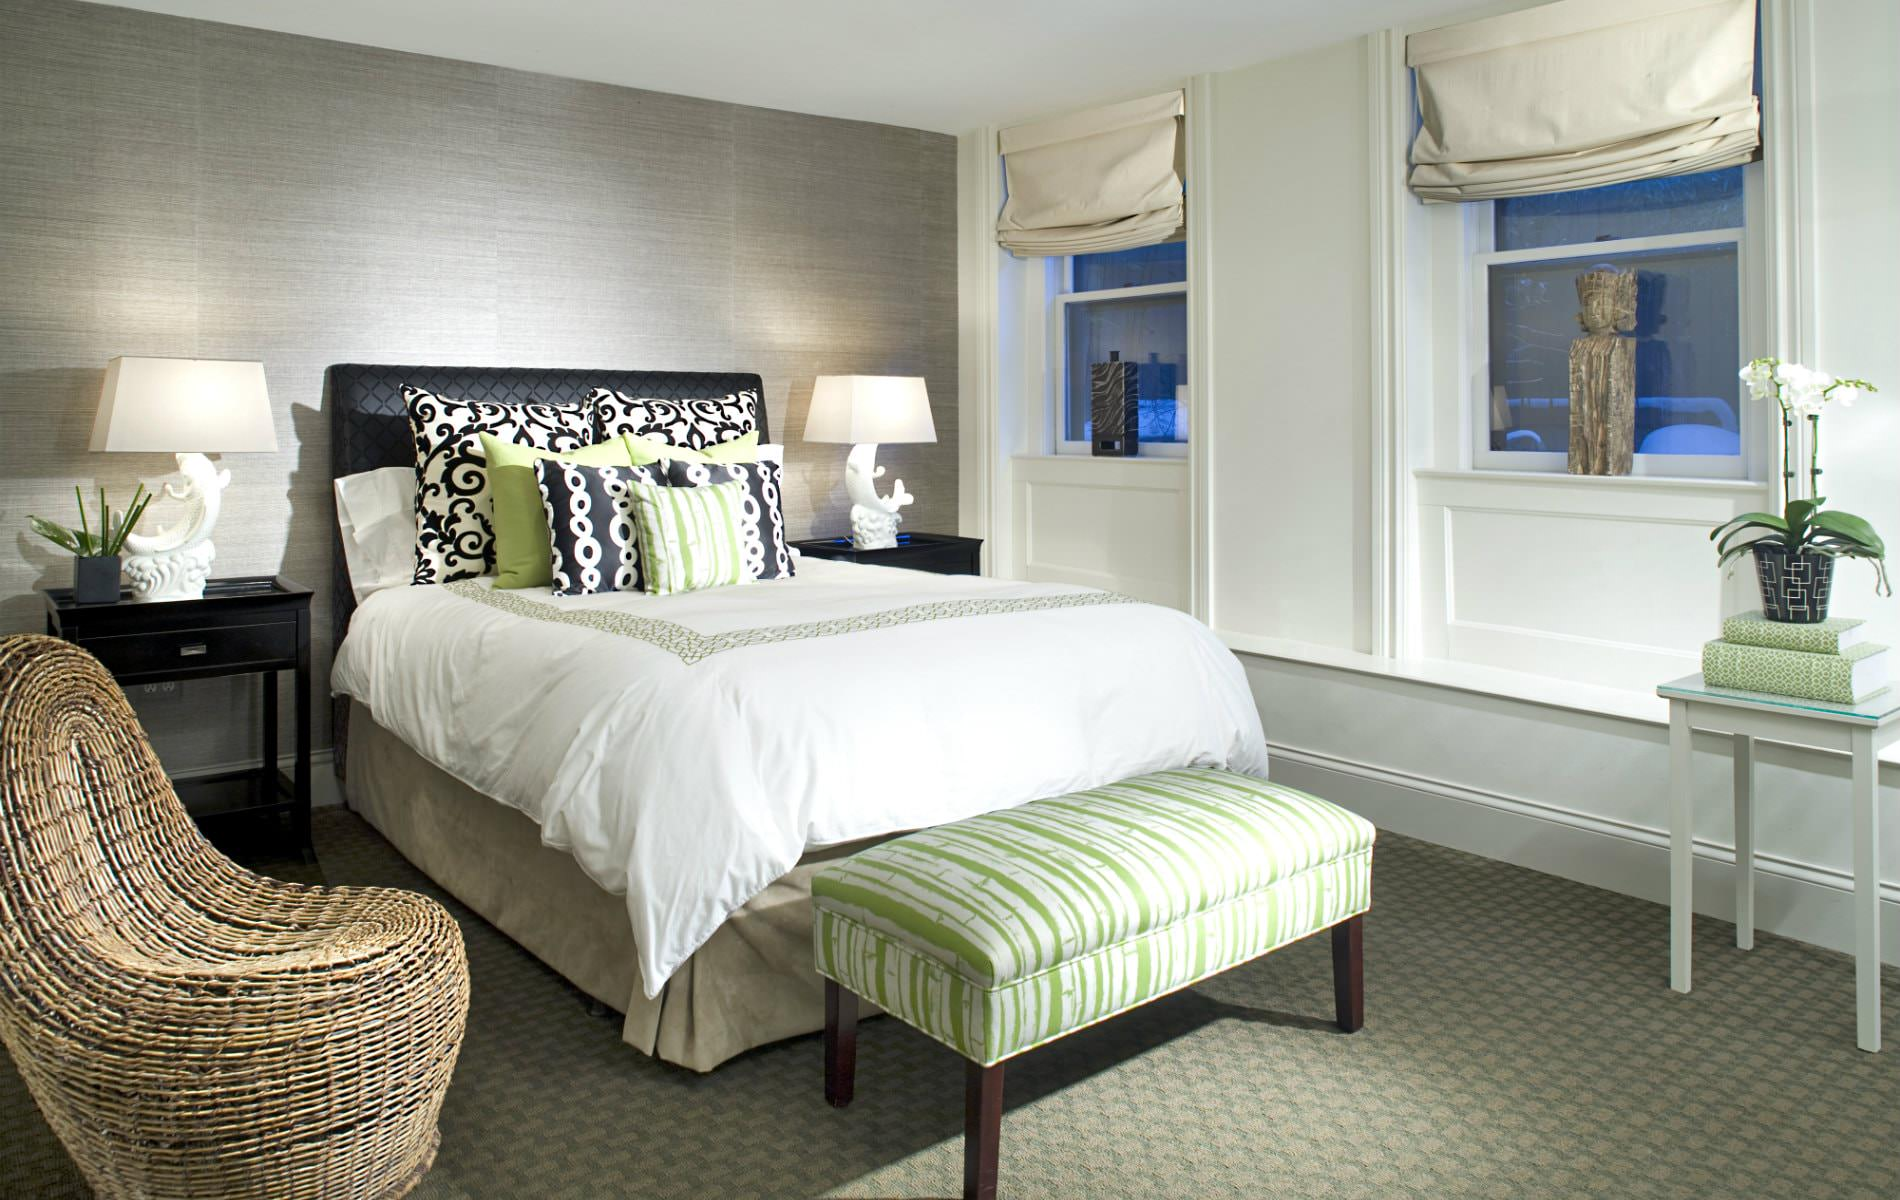 Elegant guest room with black, lime green and white bed, lime green bench, wicker chair, and two windows